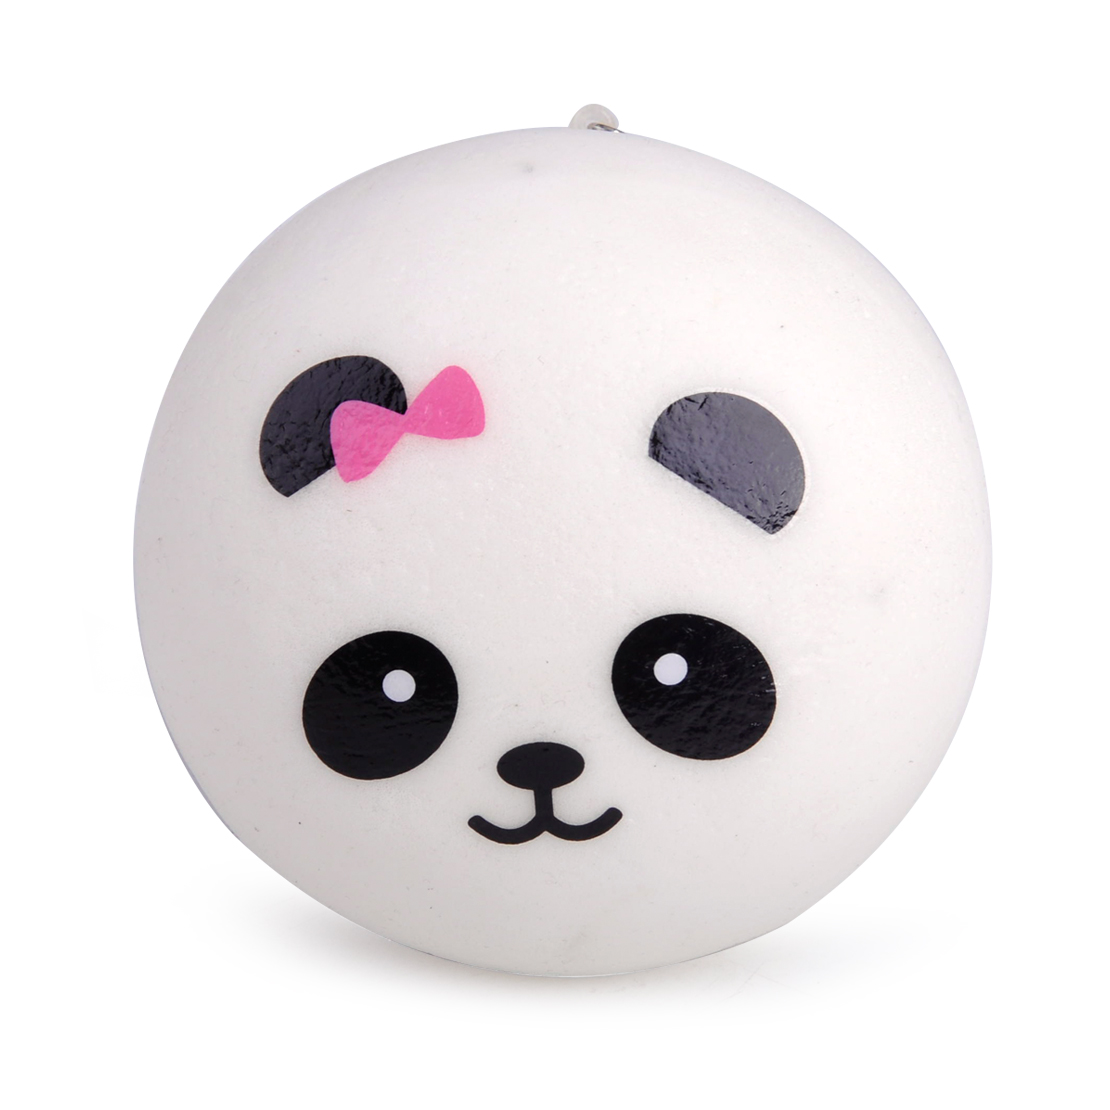 7cm Jumbo Panda Squishy Charms Kawaii Buns Bread Cell Phone Key/bag Strap Pendant Squishes Bag Accessories Luggage & Bags